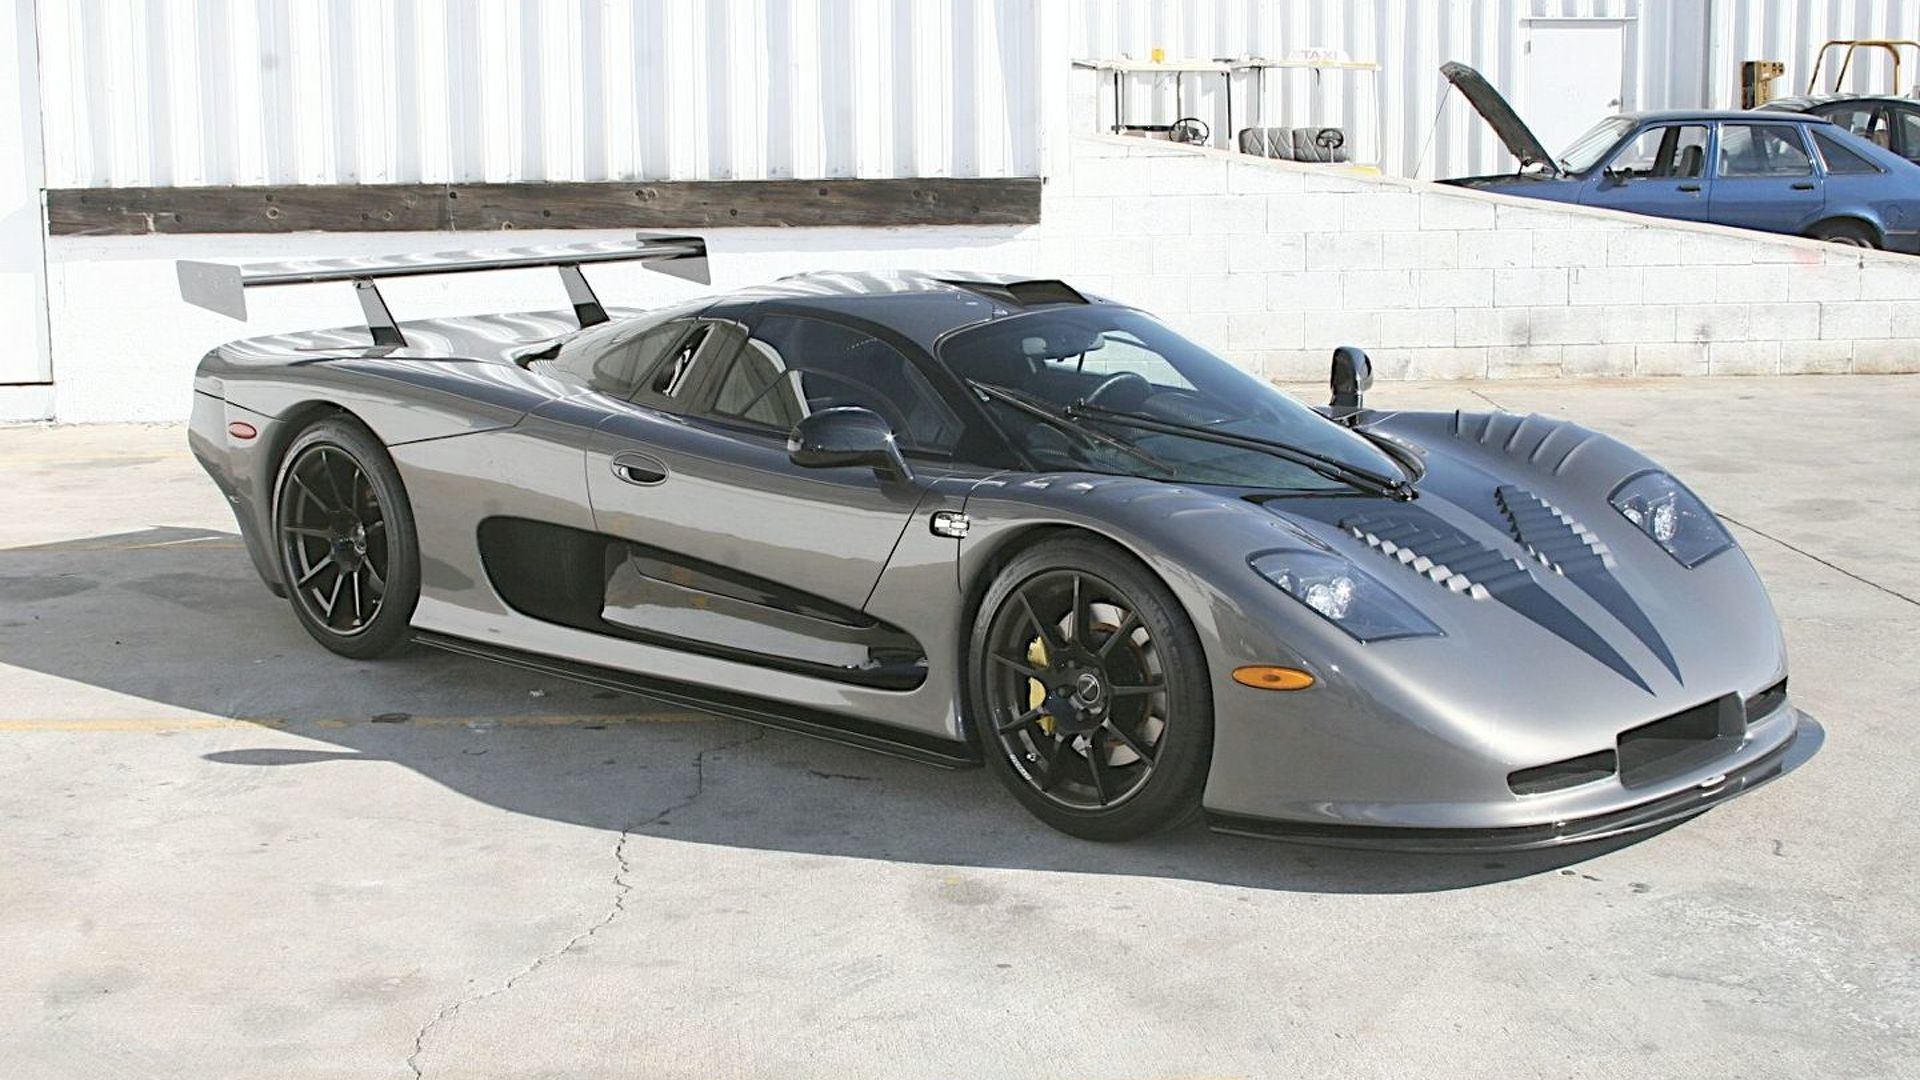 mosler mt900 gtr xx twin turbo land shark revealed. Black Bedroom Furniture Sets. Home Design Ideas